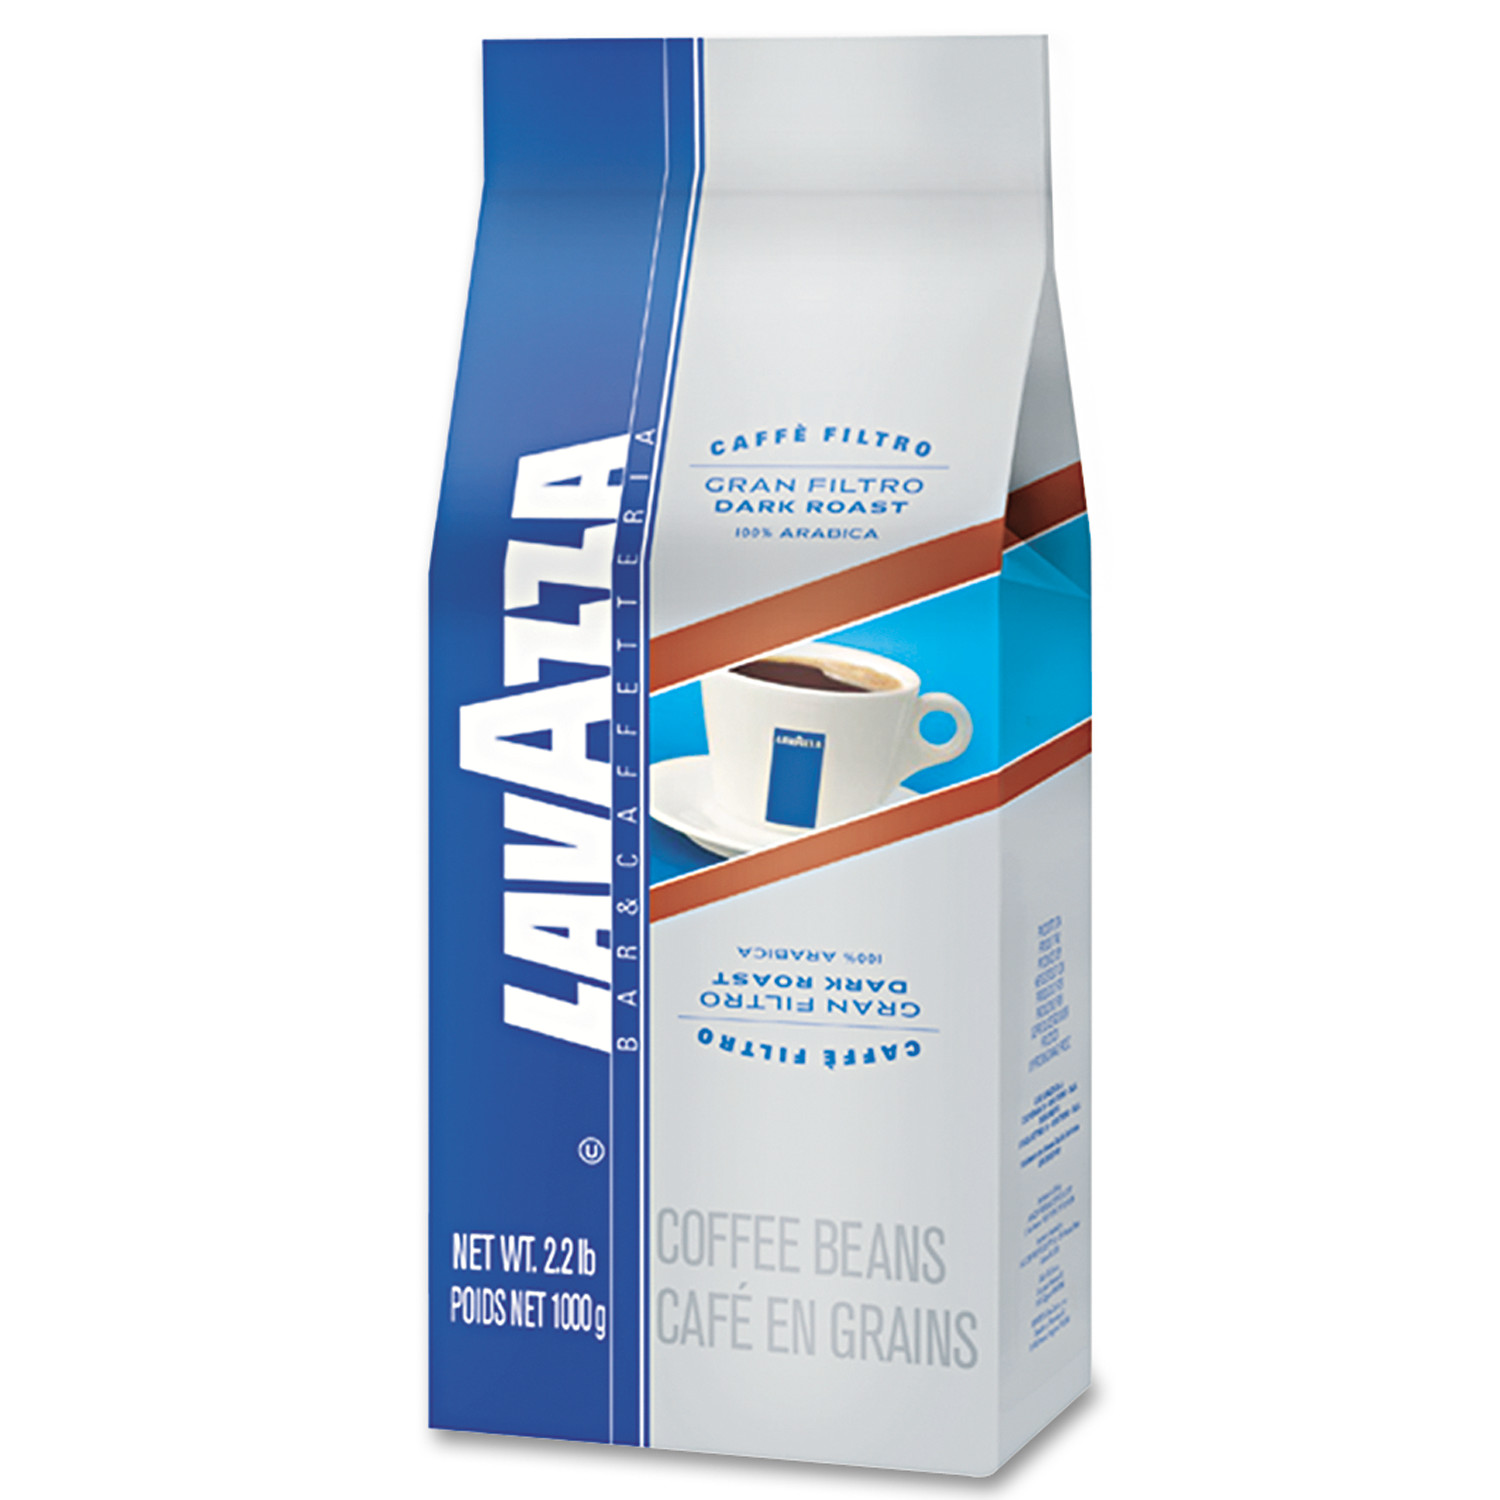 Lavazza Gran Filtro Dark Italian Roast Coffee, Whole Bean, 2.2lb Bag